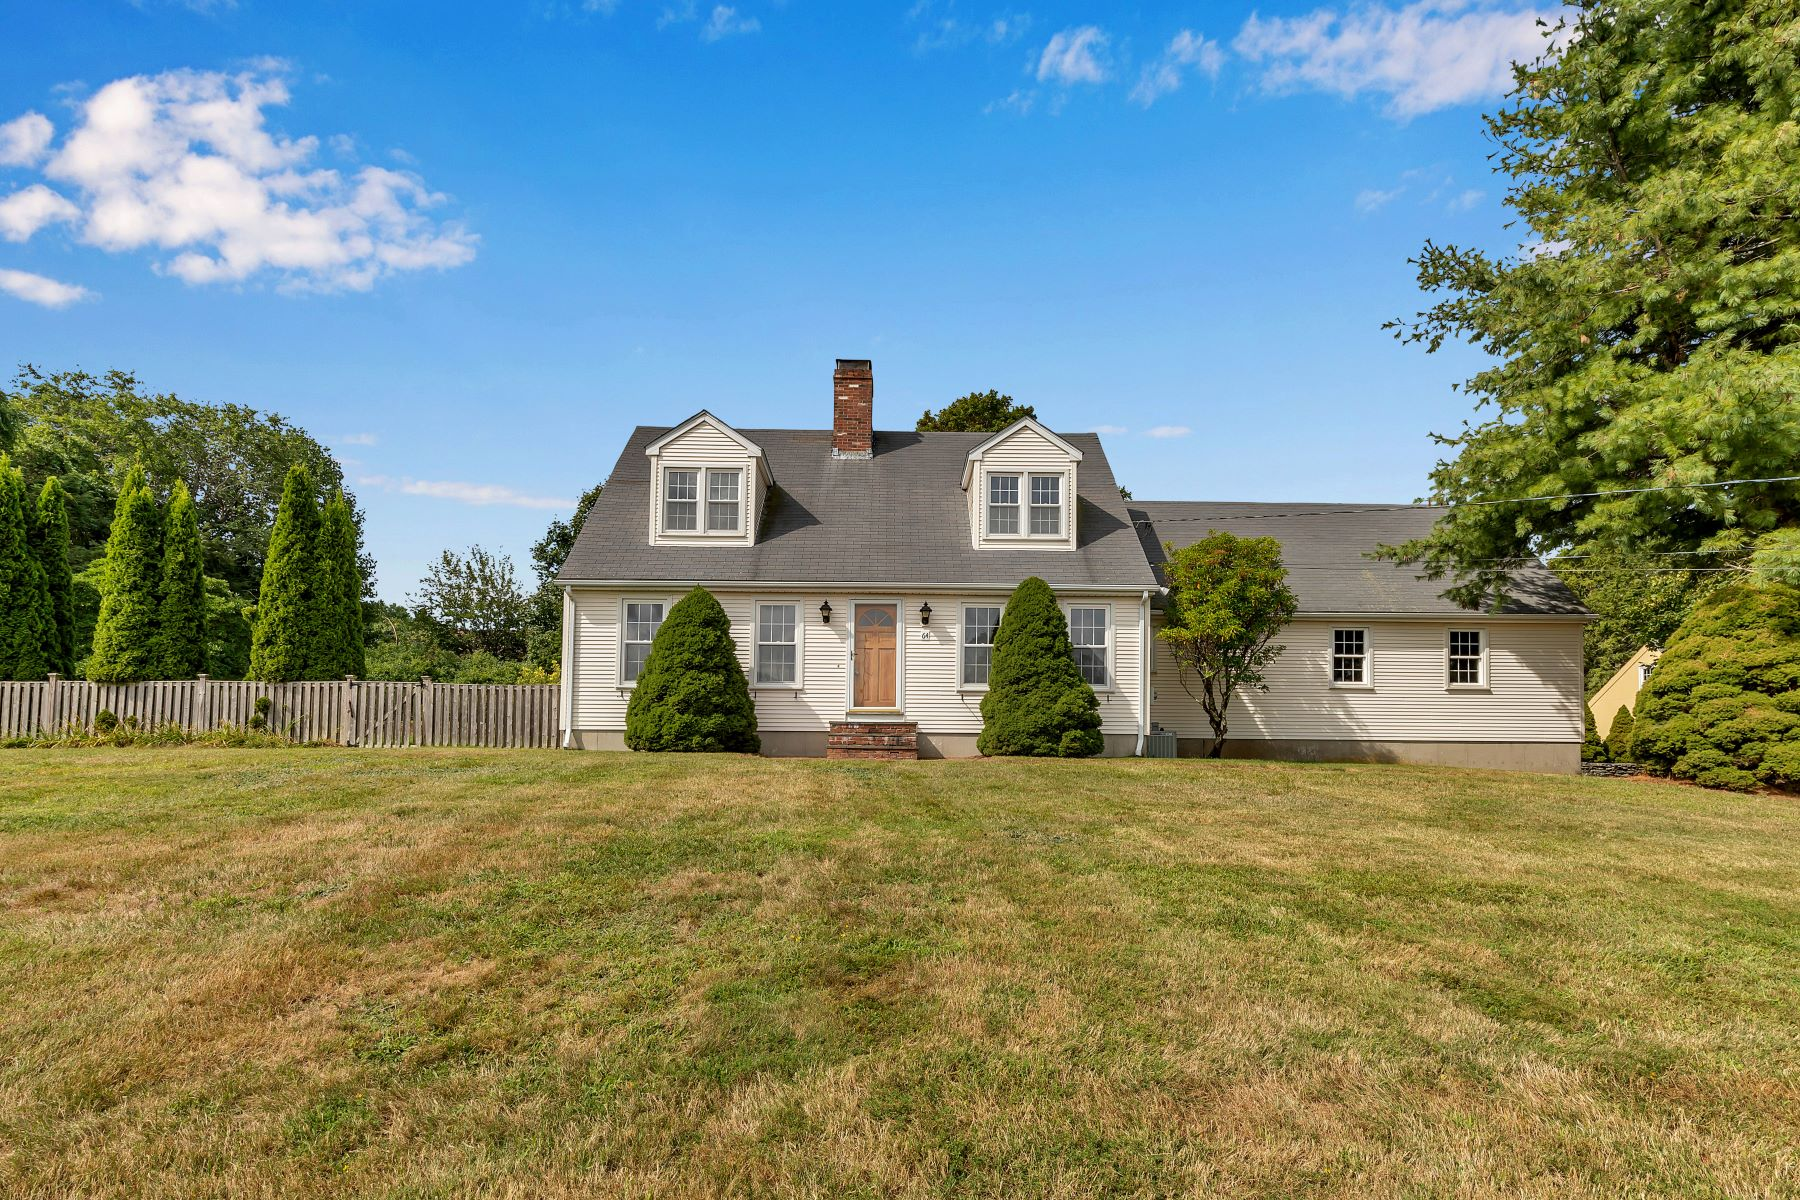 Property for Sale at 64 Scenic View Drive Deep River, Connecticut 06417 United States